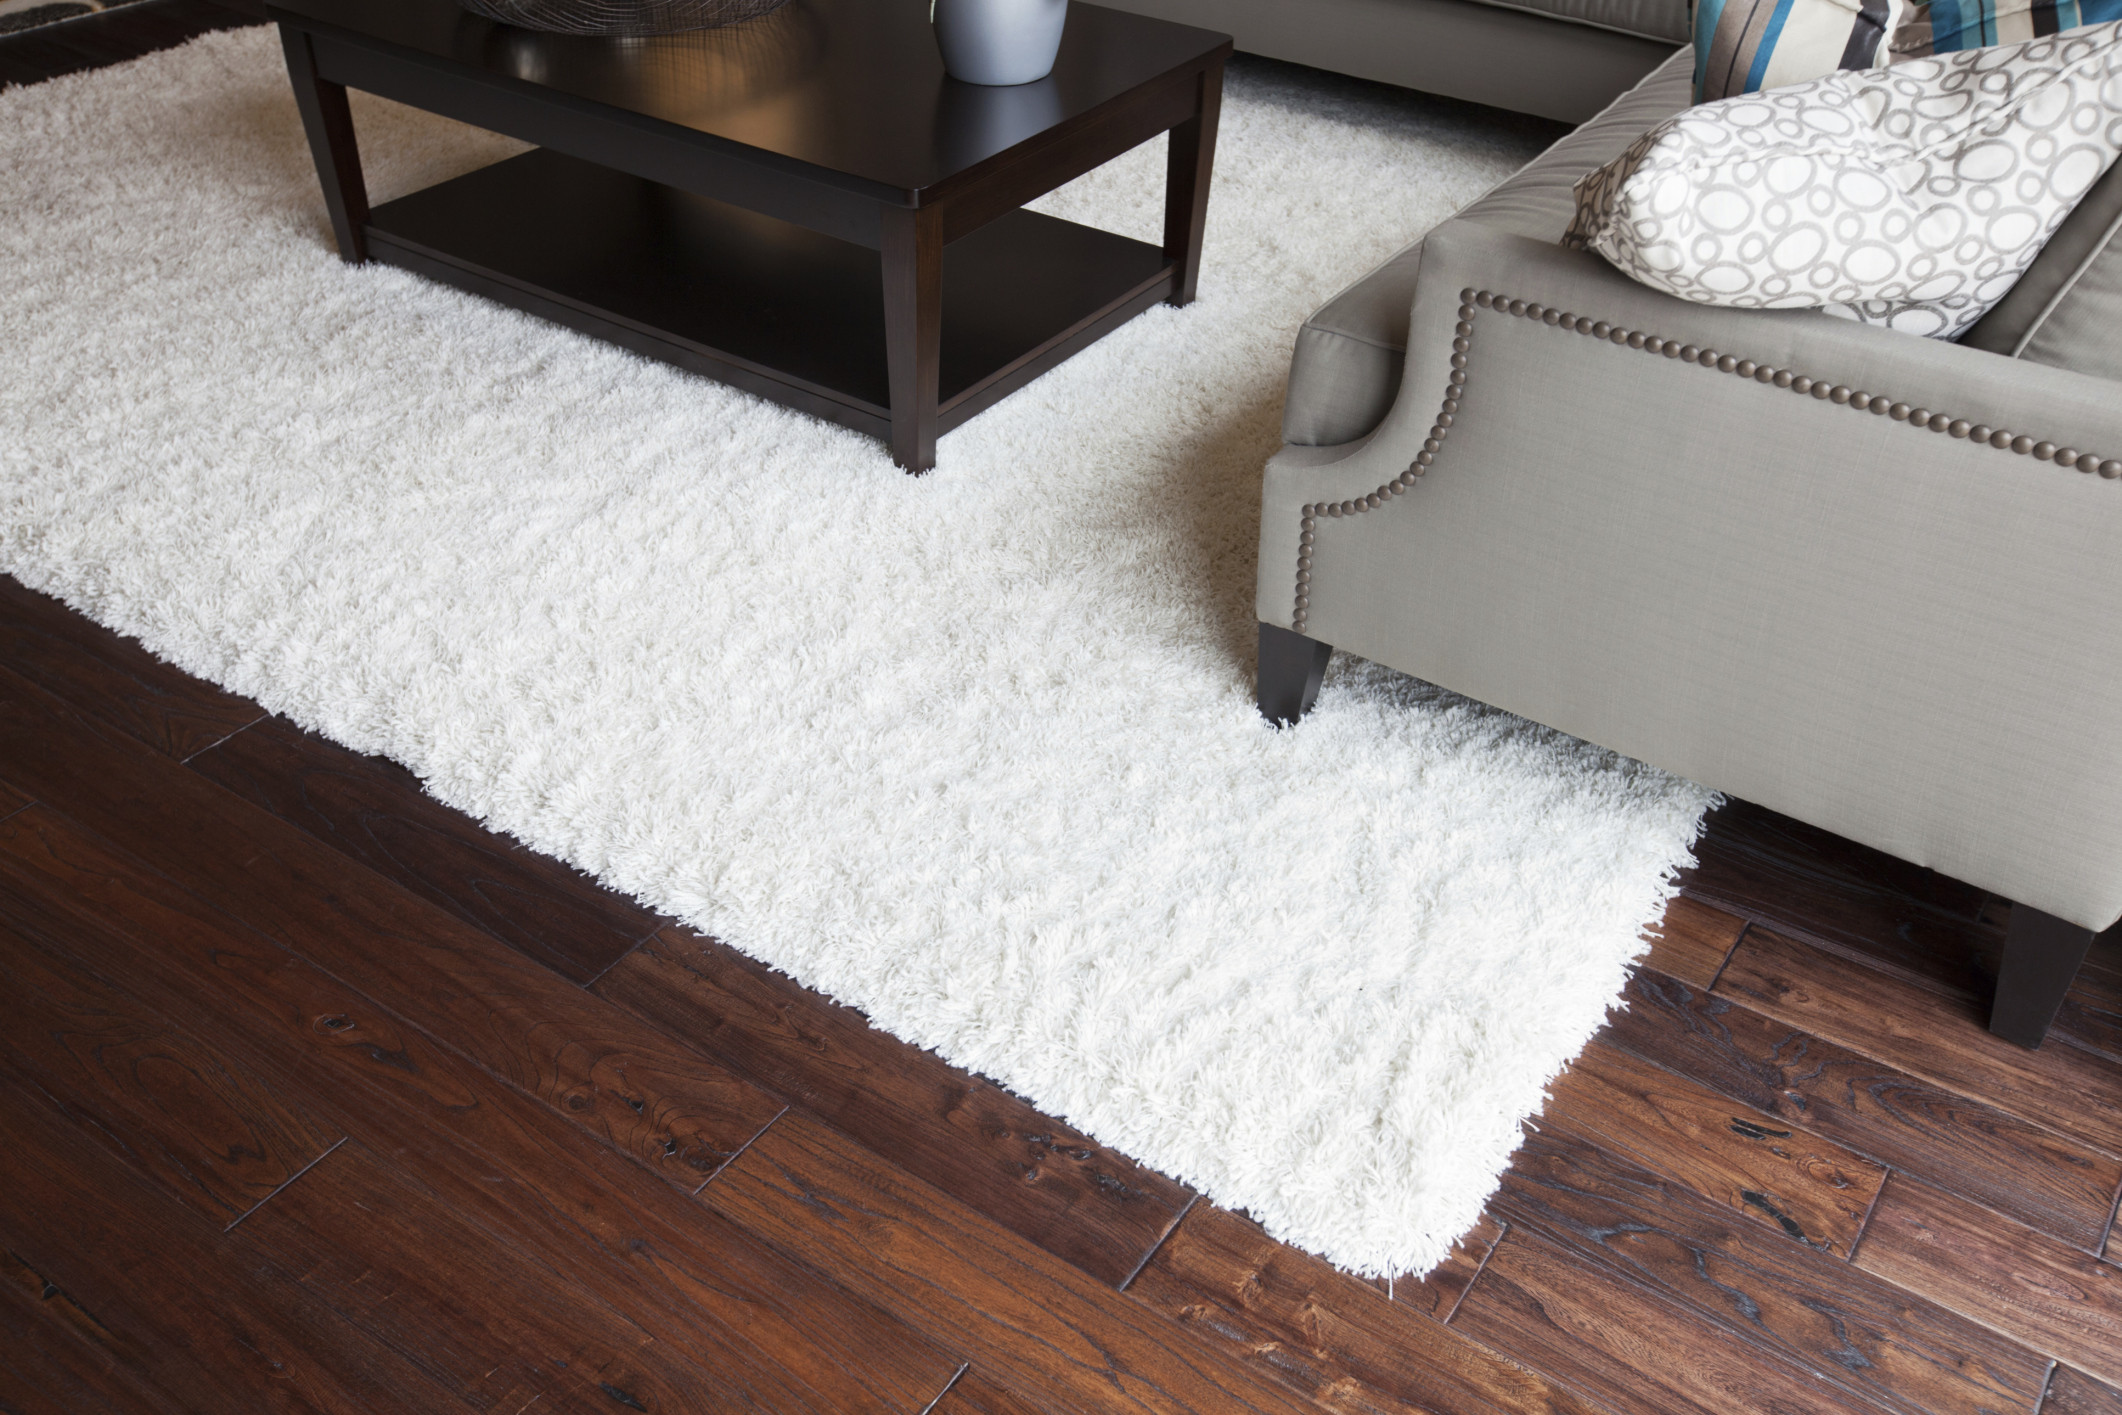 Kitchen Mats For Wood Floors How To Maintain And Clean Hardwood Floors Hirerush Blog